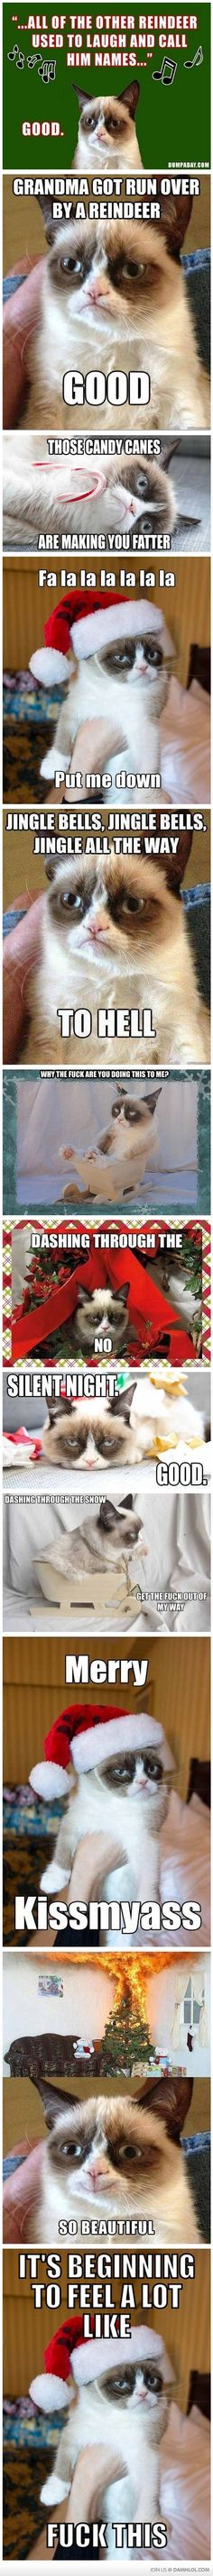 Ideas For Funny Christmas Quotes And Sayings Lol Grumpy Cat Grumpy Cat Christmas, Christmas Humor, Christmas Quotes, Merry Christmas, Christmas Pictures, Christmas Wishes, Christmas Animals, Christmas Time, Christmas Ideas